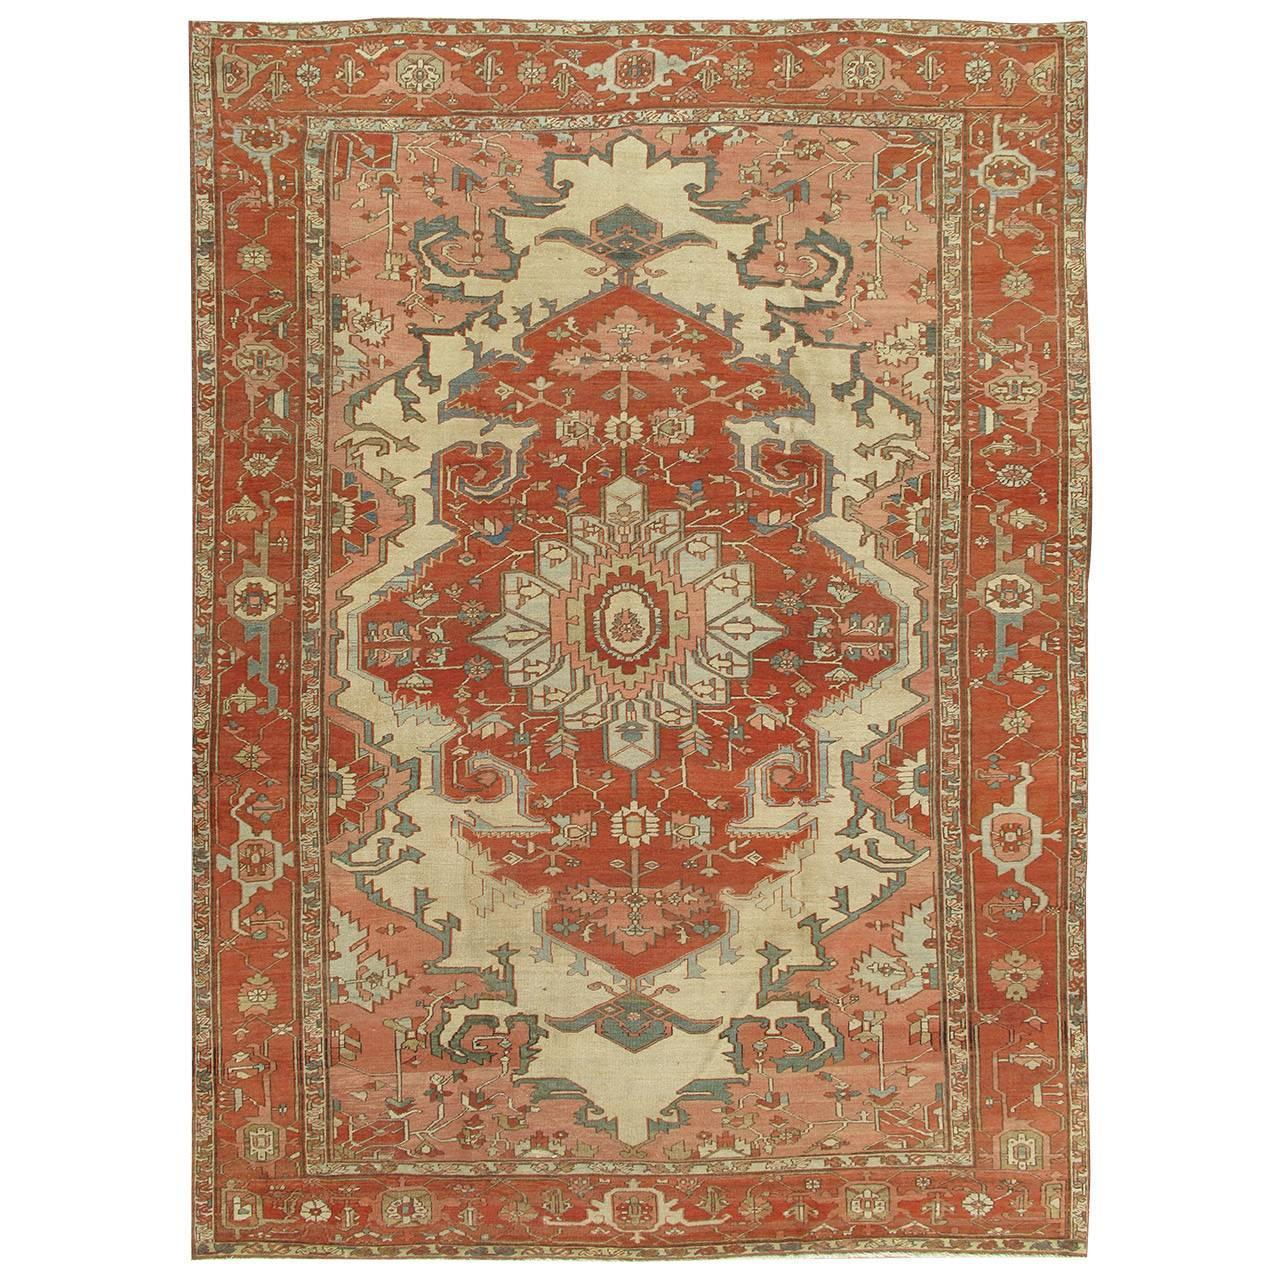 Chinese Rug Dealers: Antique Persian Serapi Carpet, Ivory Hand-Knotted Wool